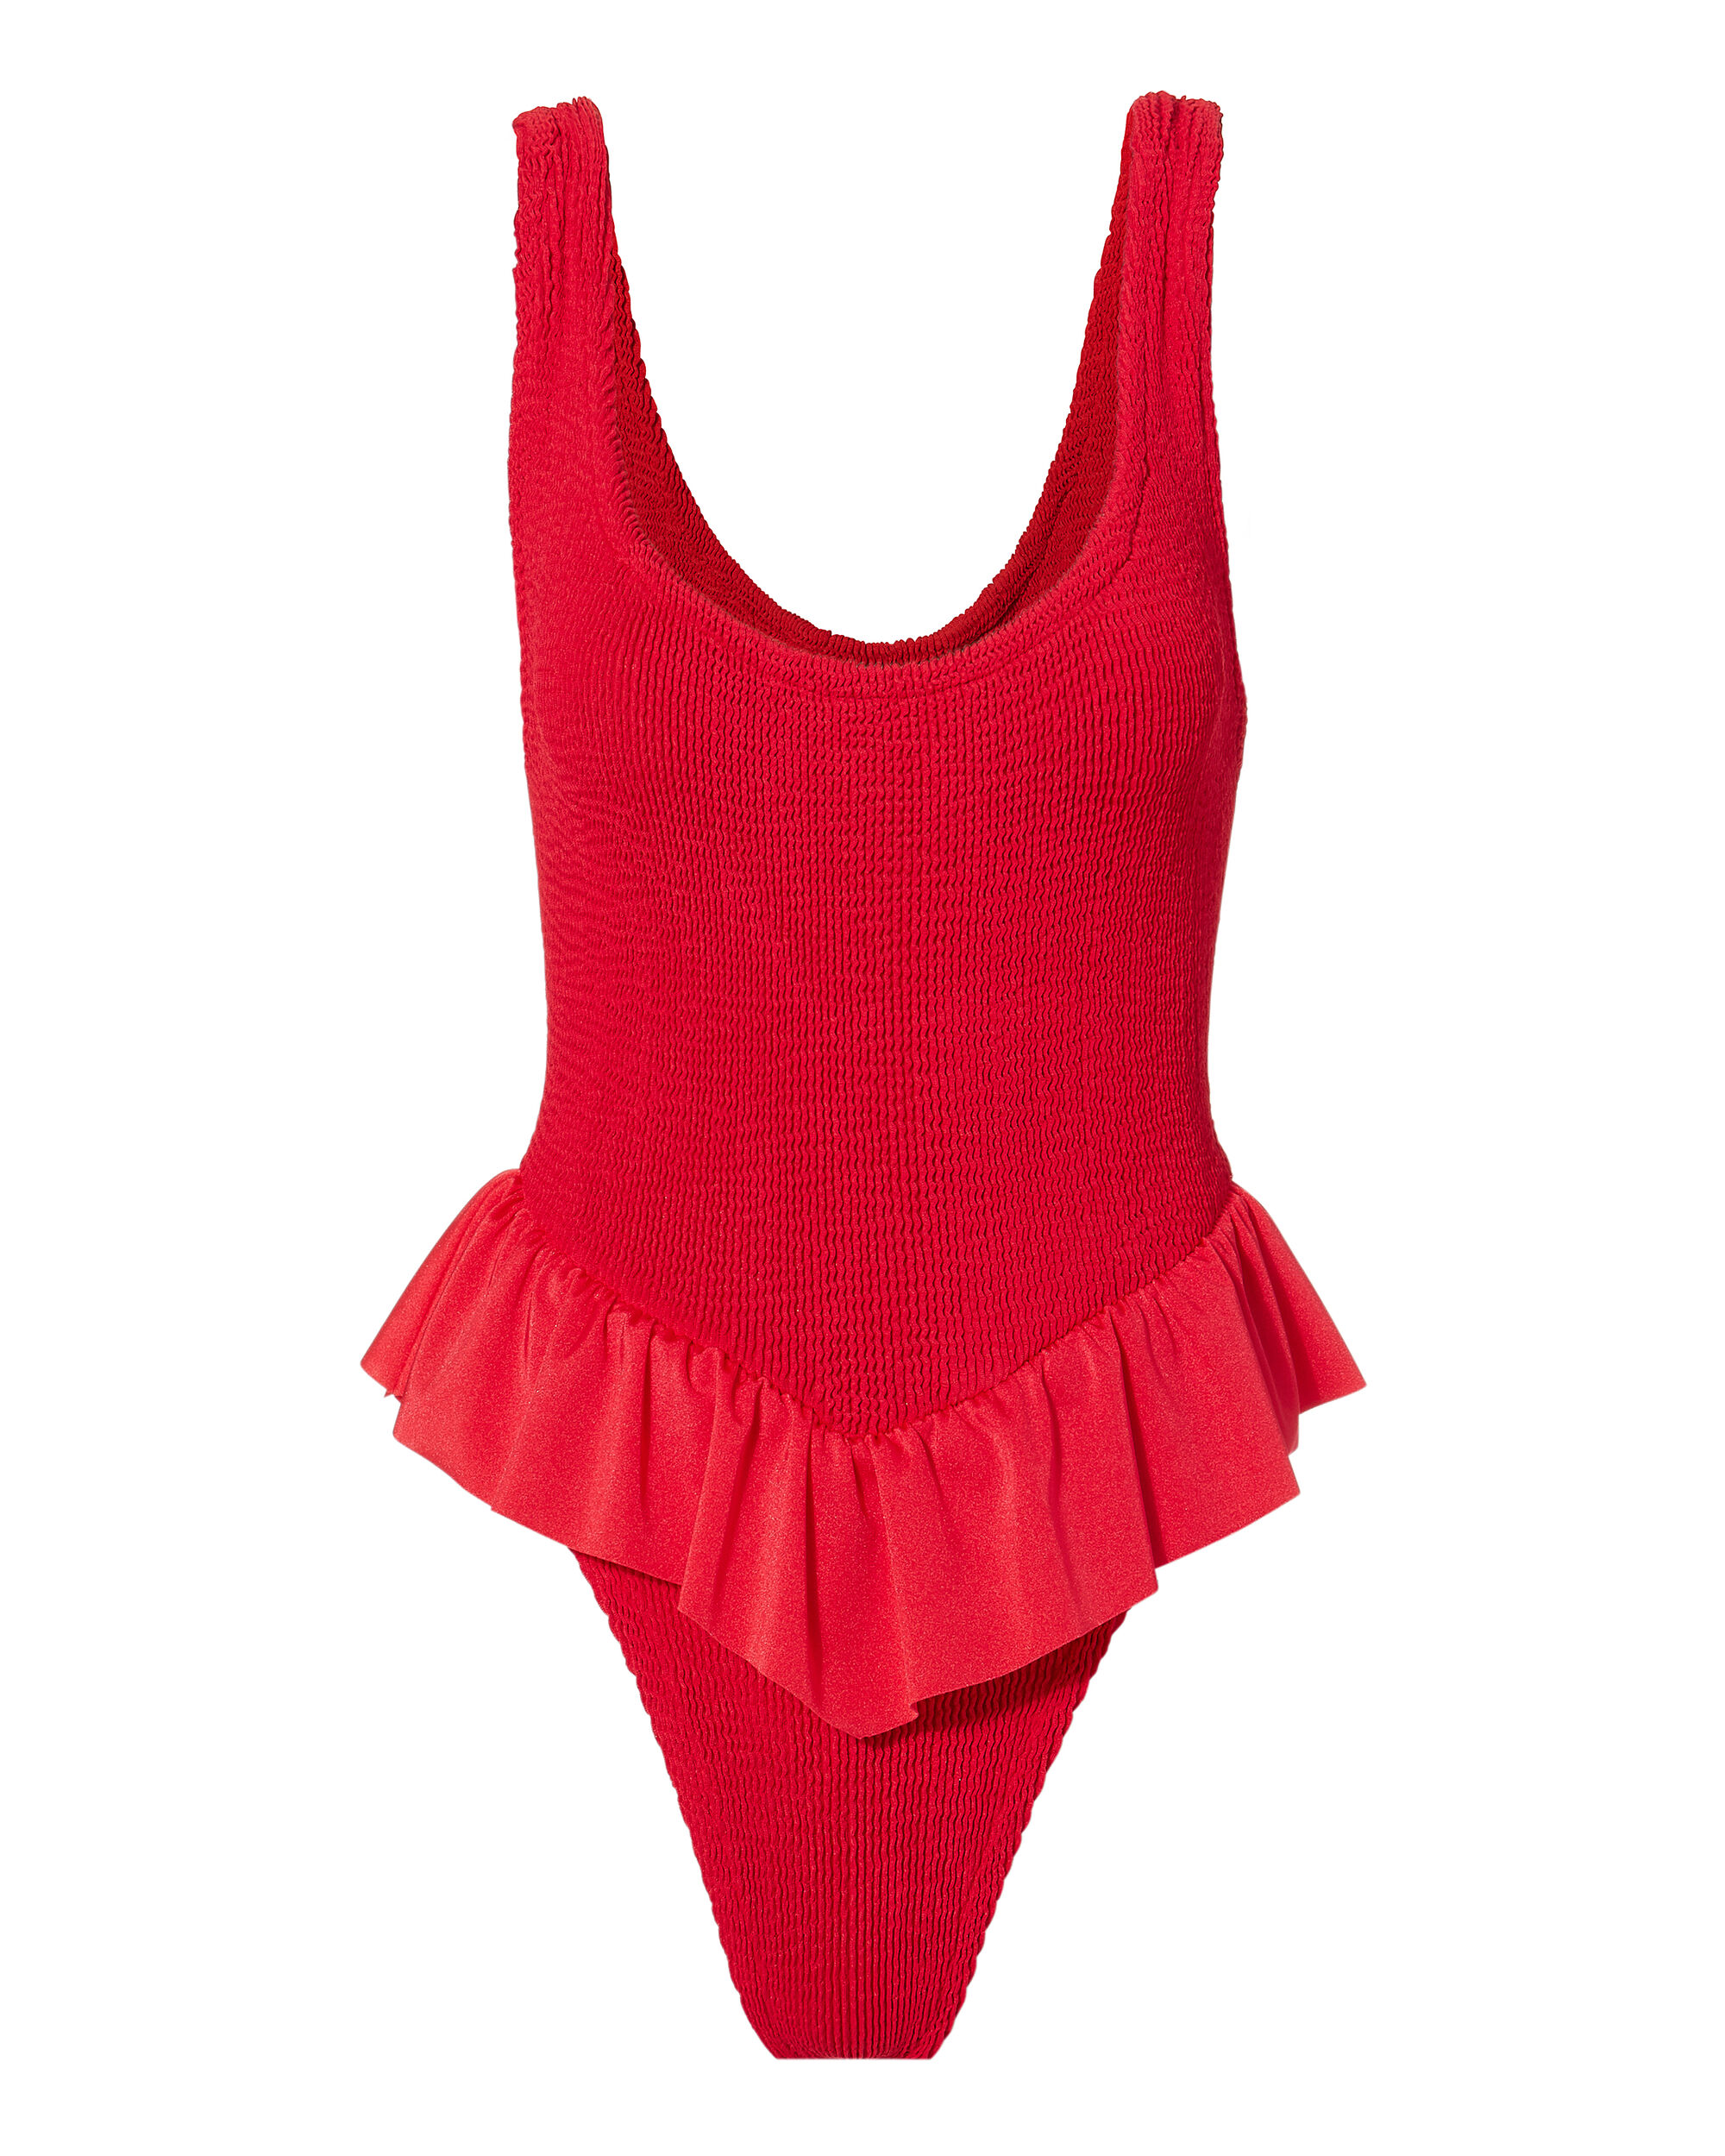 HUNZA G Denise Red One Piece Swimsuit